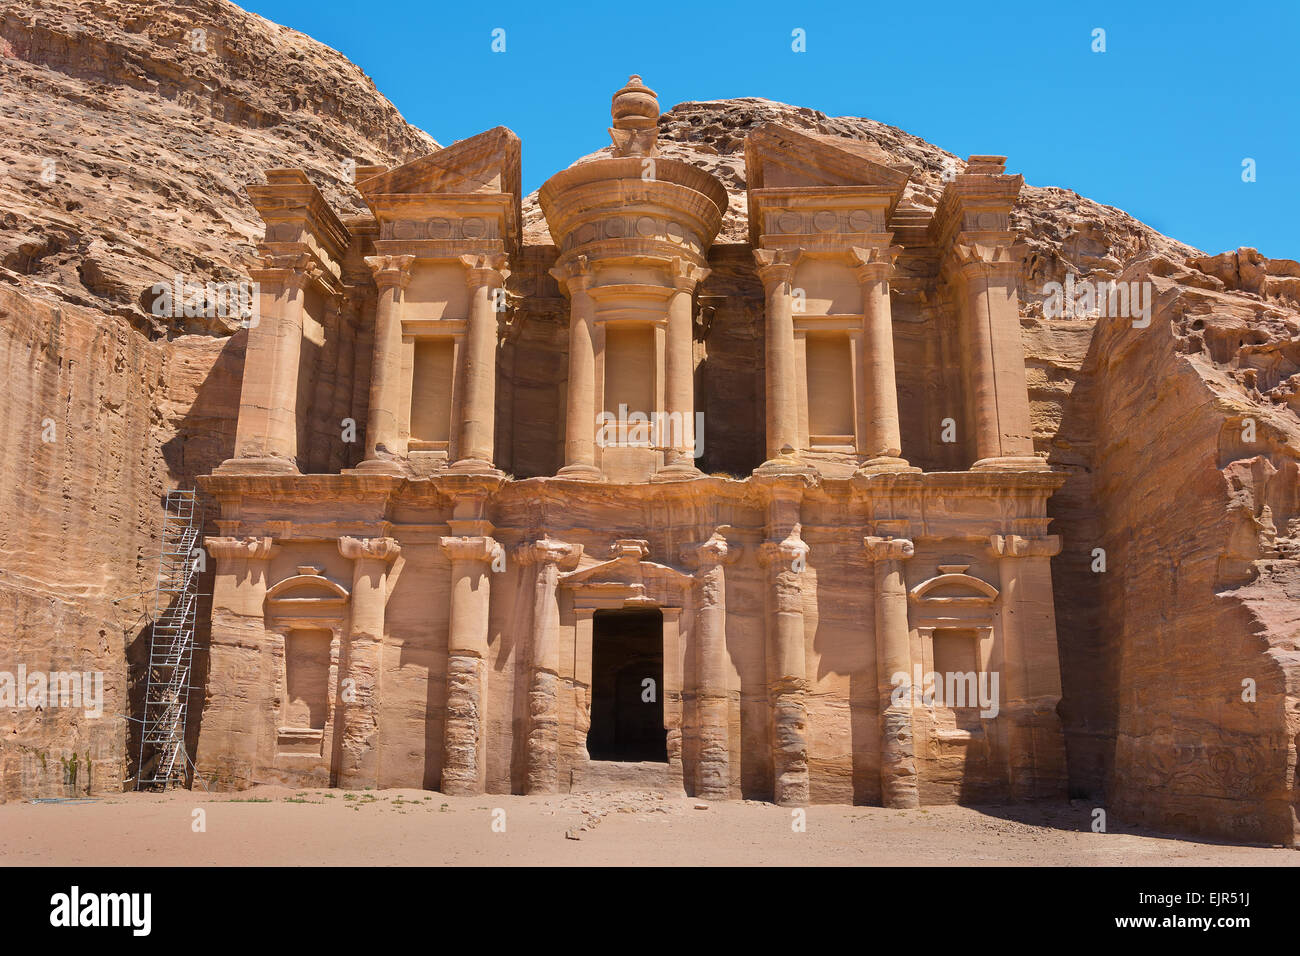 The al-Dayr tomb or monastery part of the Petra complex in Jordan - Stock Image